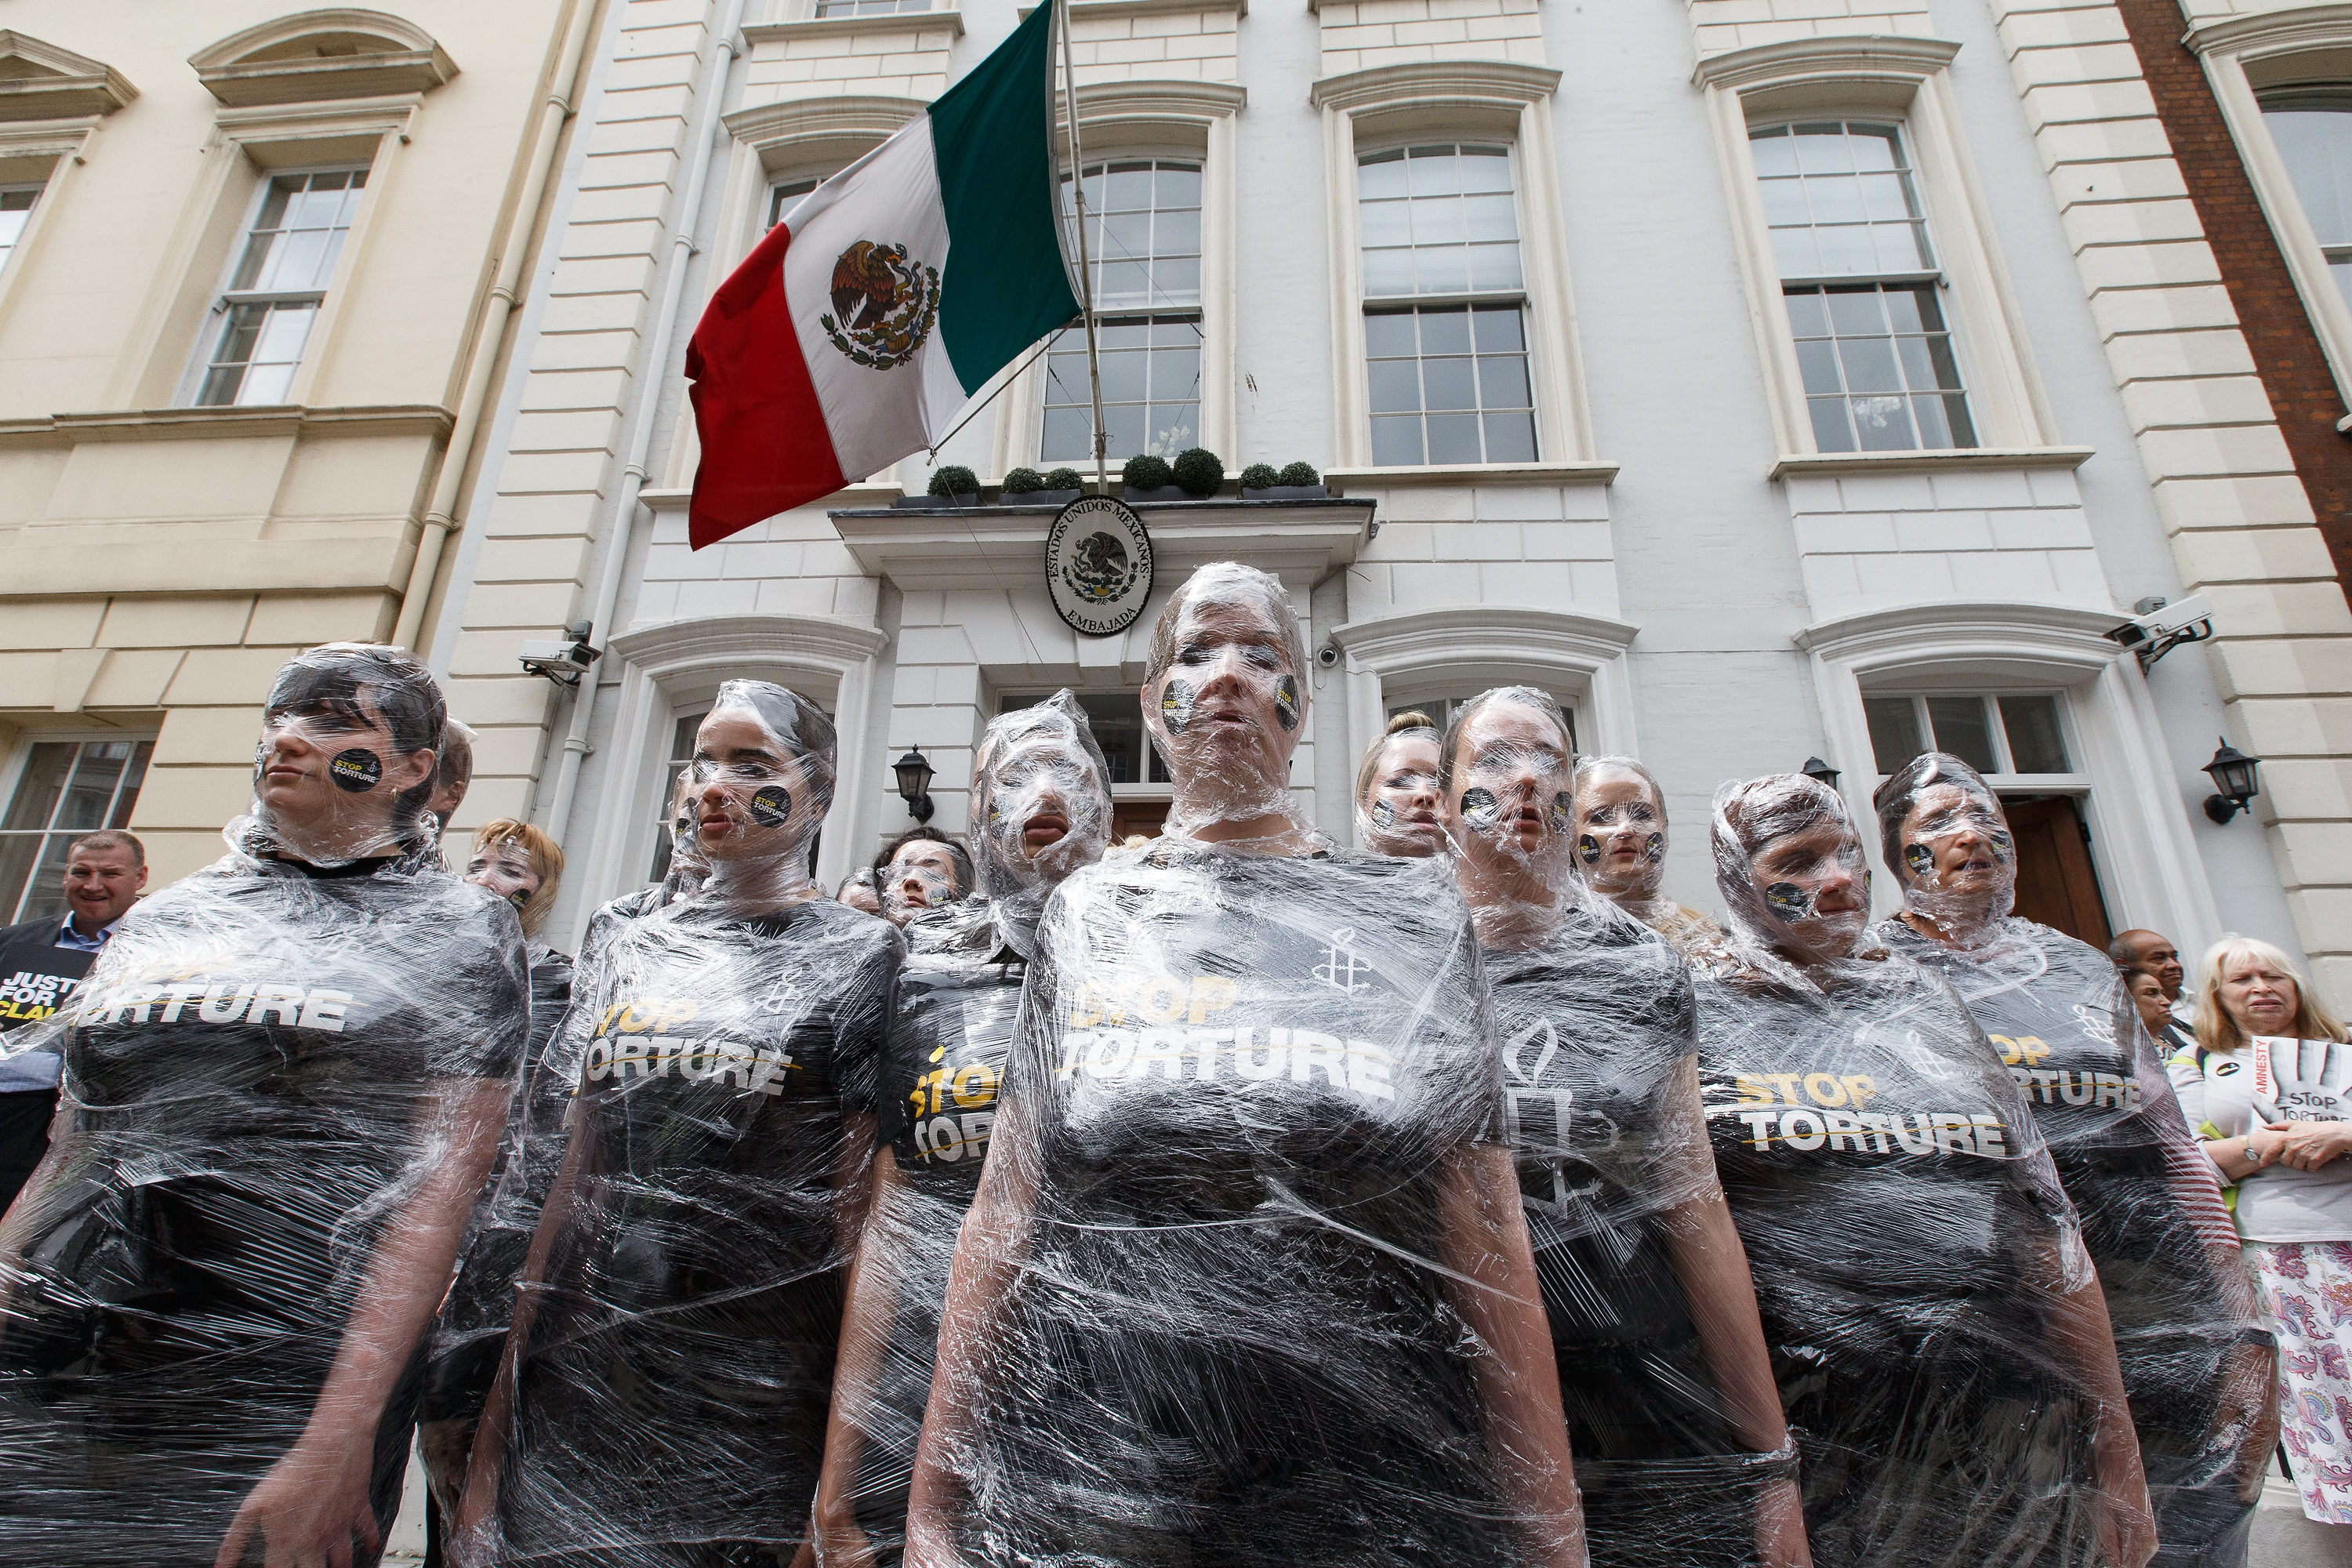 Amnesty International staged a protest against torture in Mexico